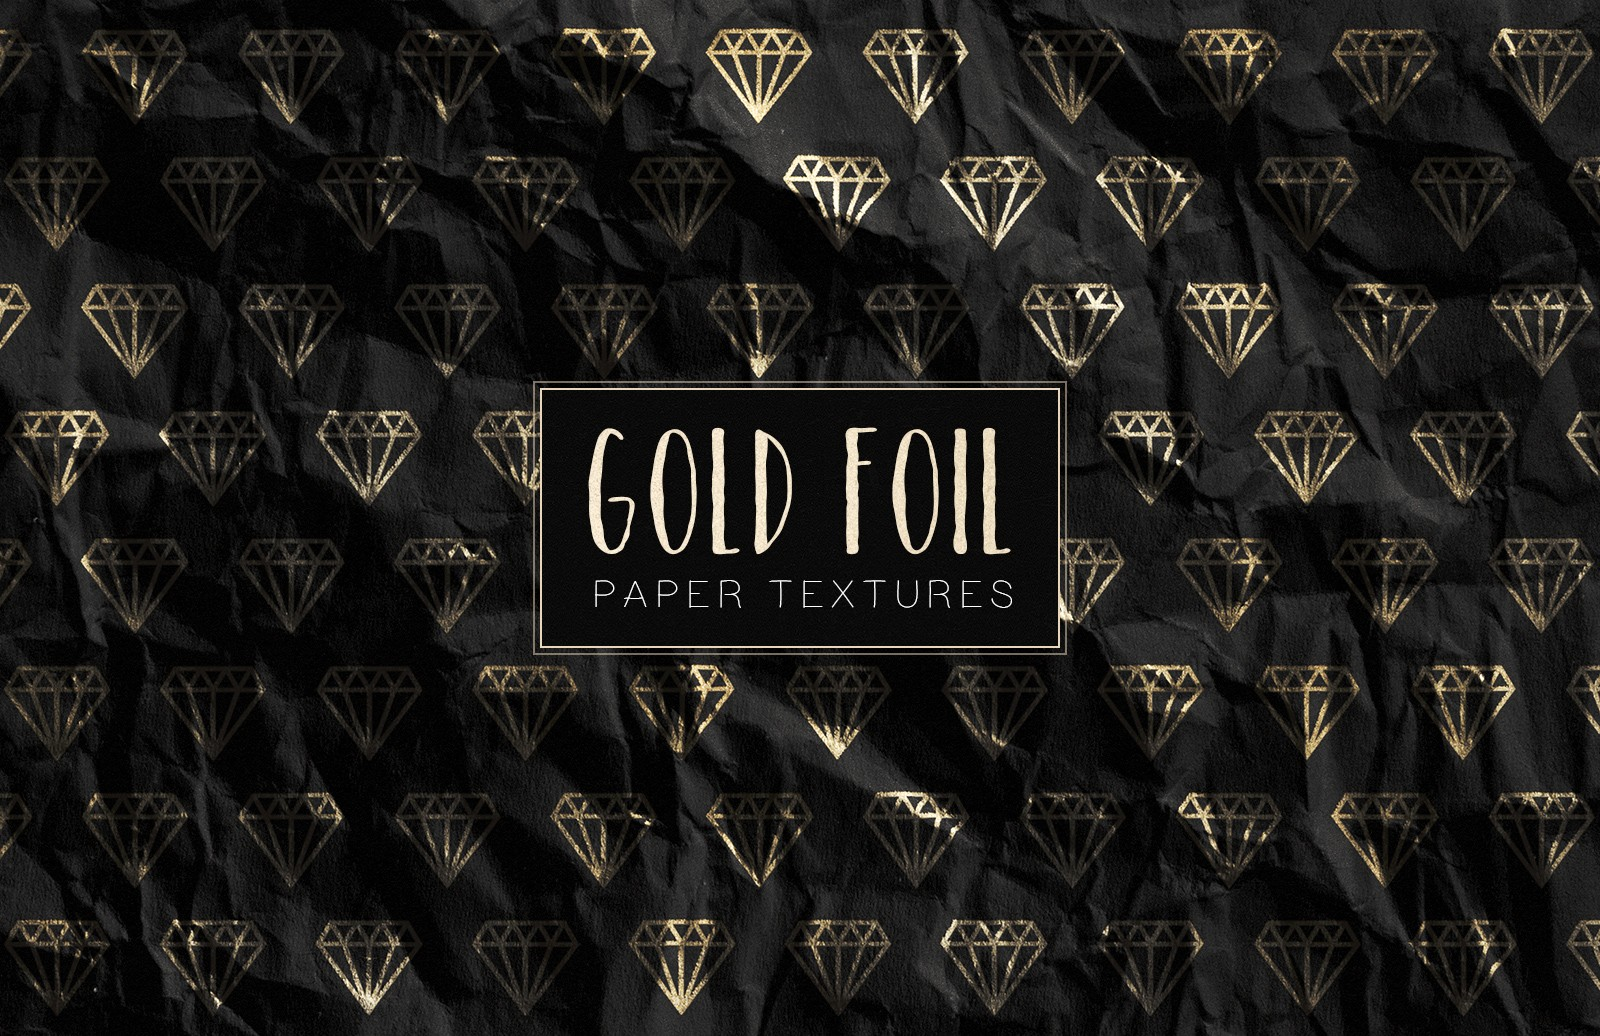 Large Gold  Foil  Paper  Textures  Preview 1